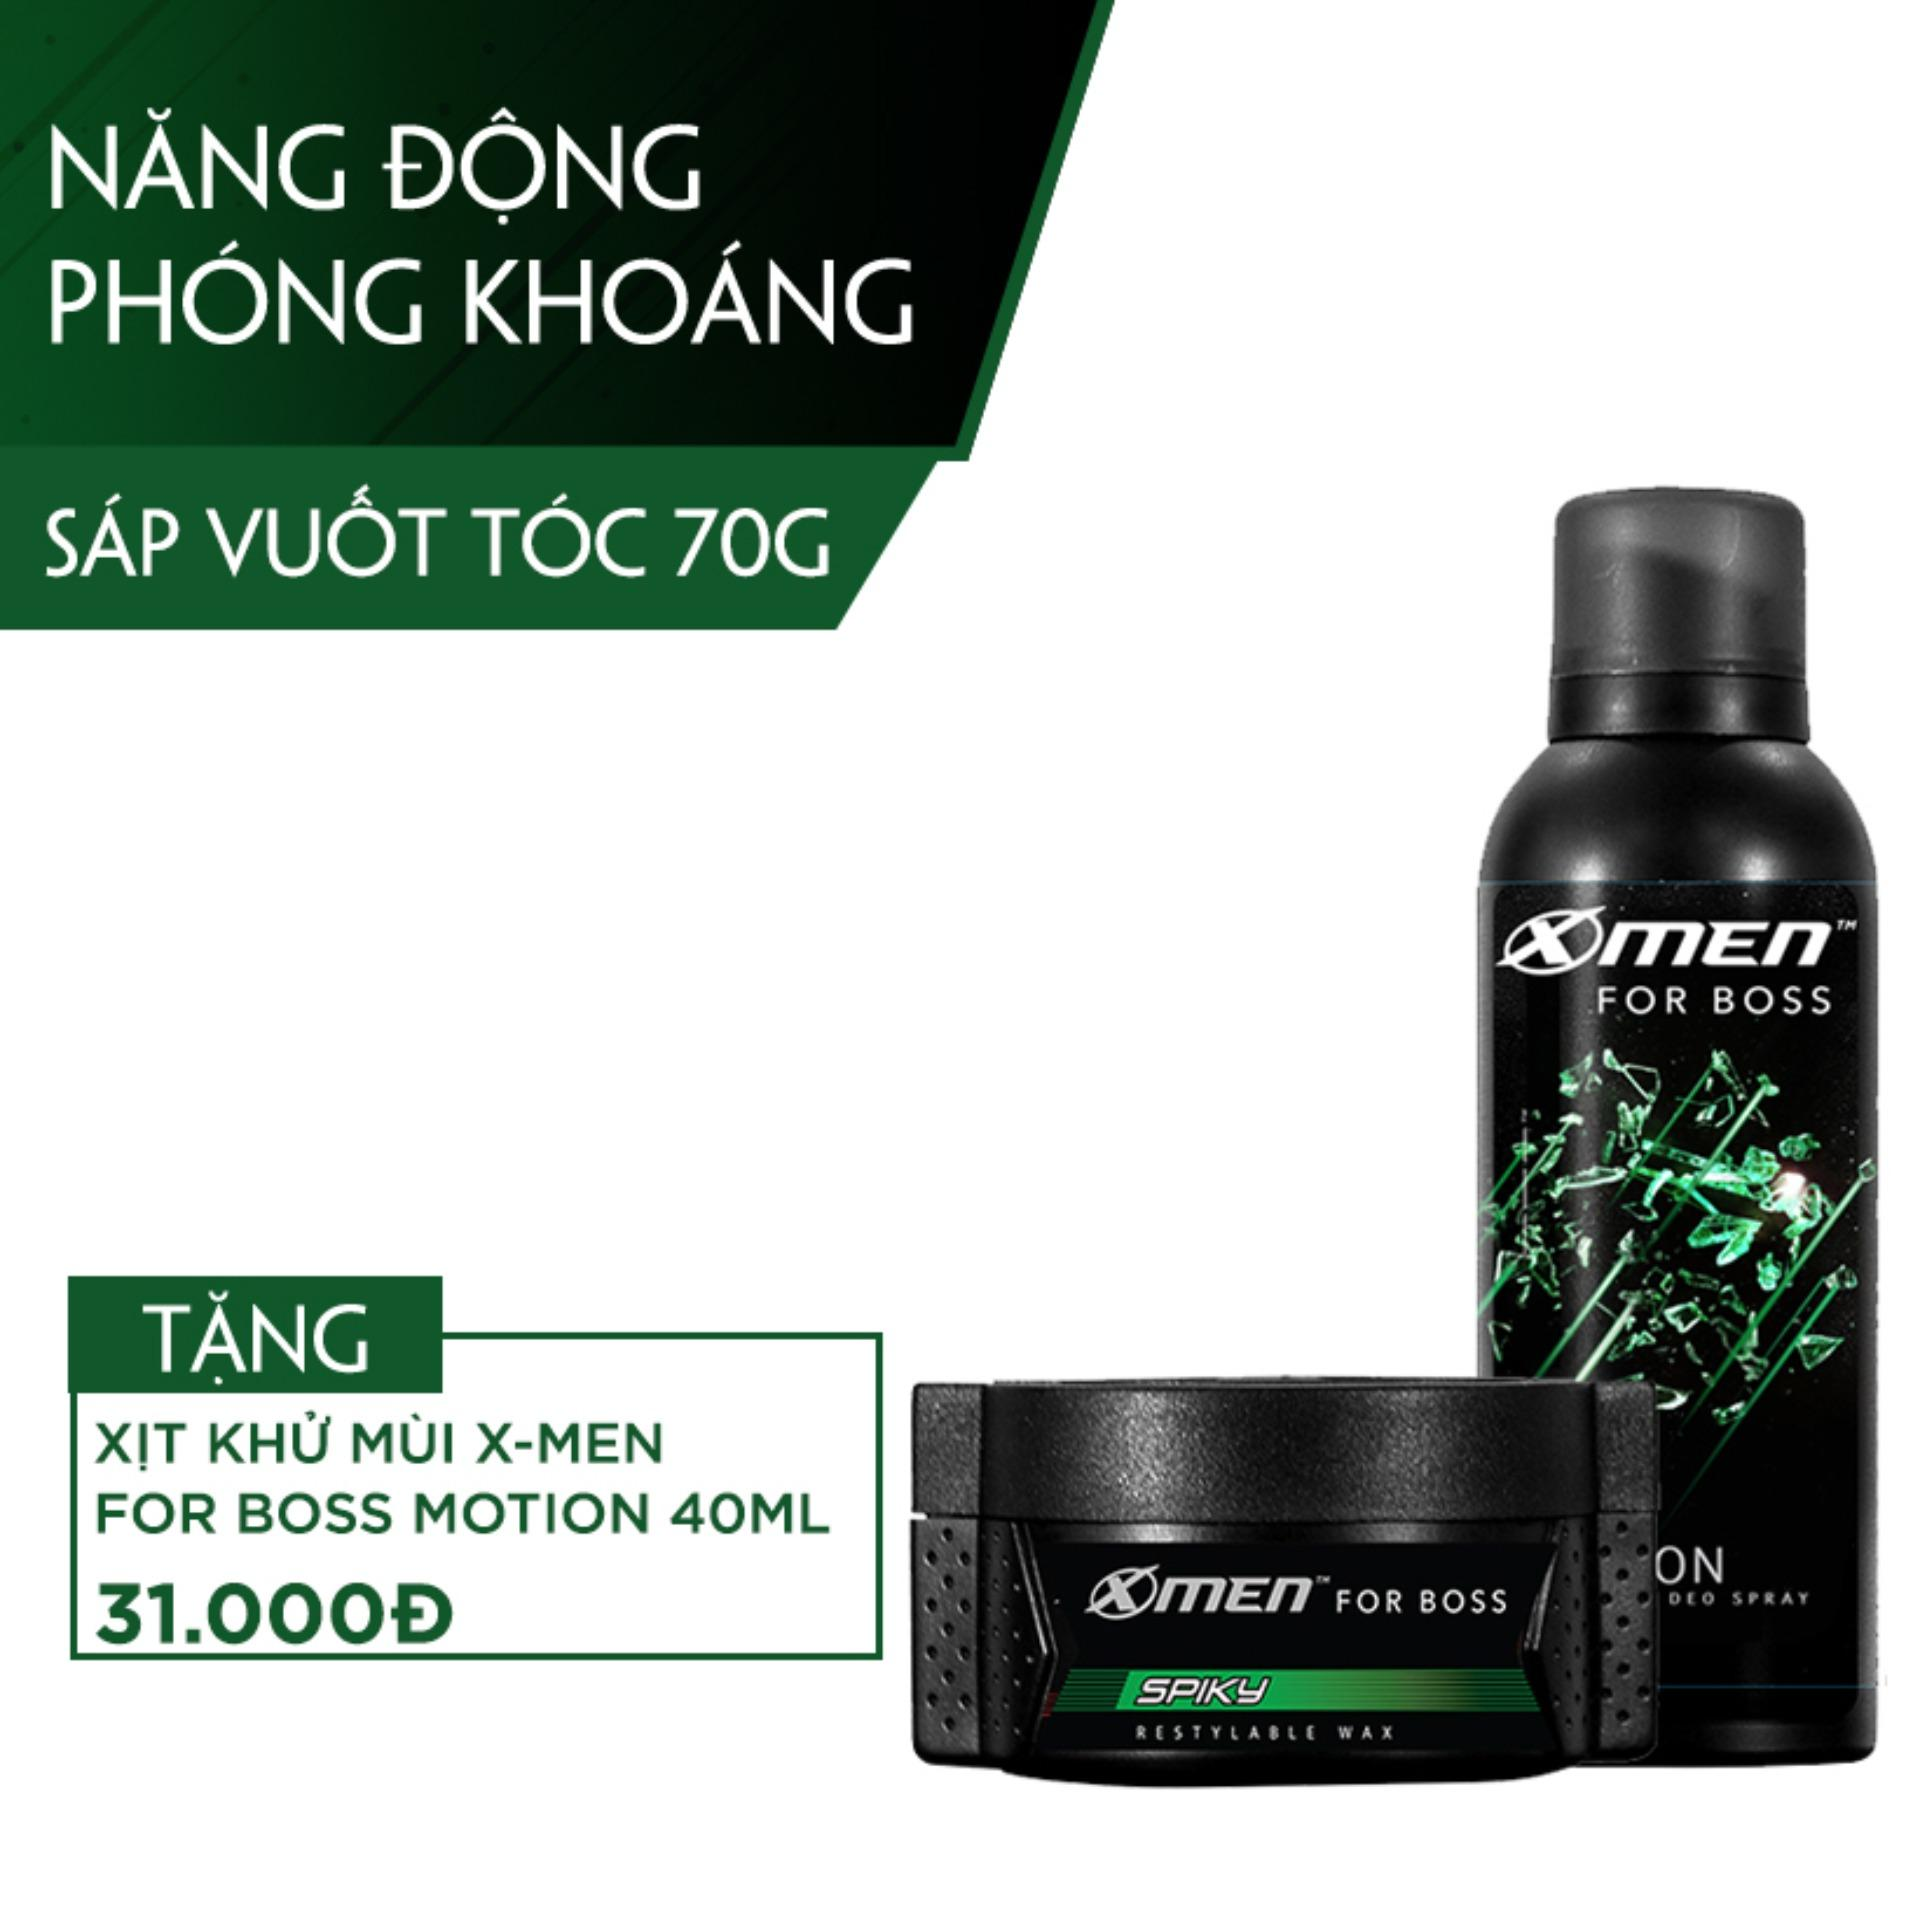 Combo Sáp vuốt tóc X-Men for Boss Wax Spiky 70g tặng Xịt khử mùi X-Men for Boss Motion 40ml